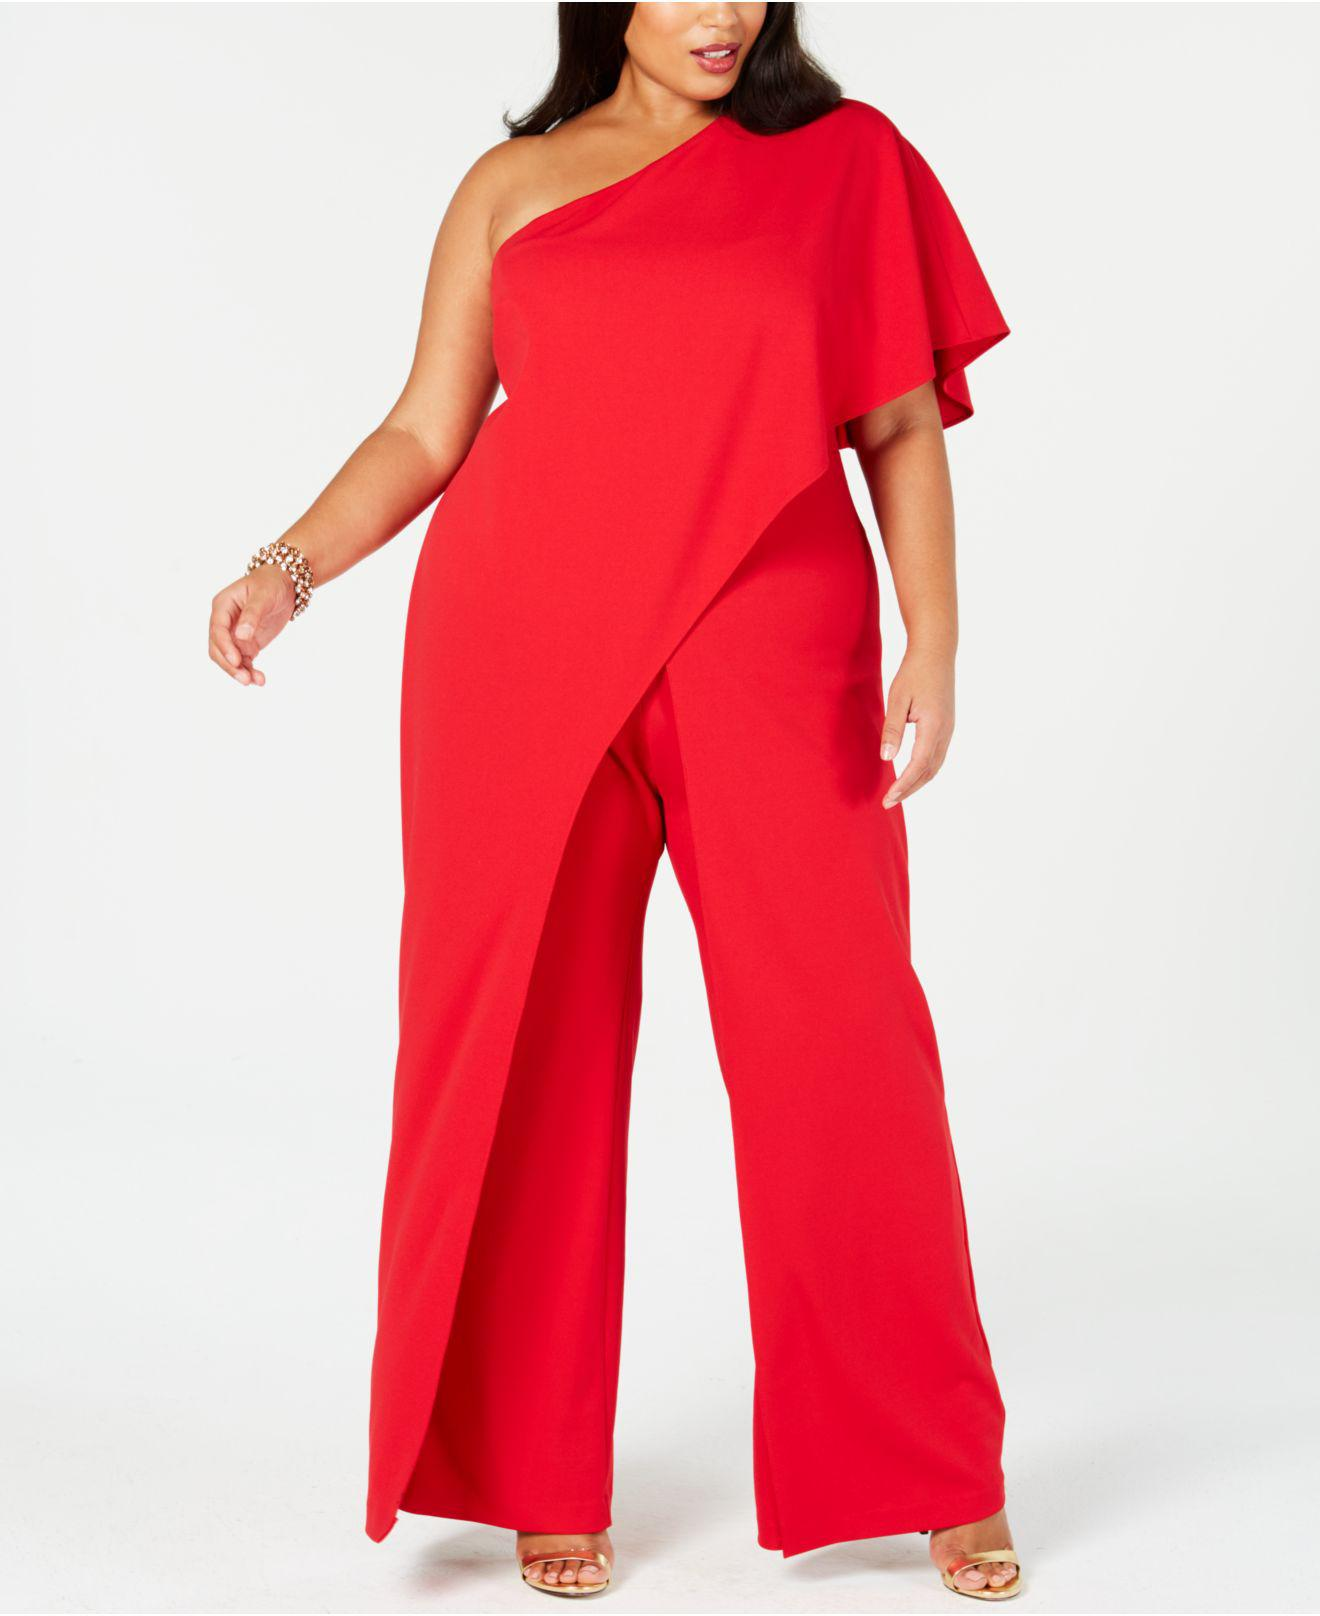 de9e1d538f7d Lyst - Adrianna Papell Plus Size Draped One-shoulder Jumpsuit in Red ...